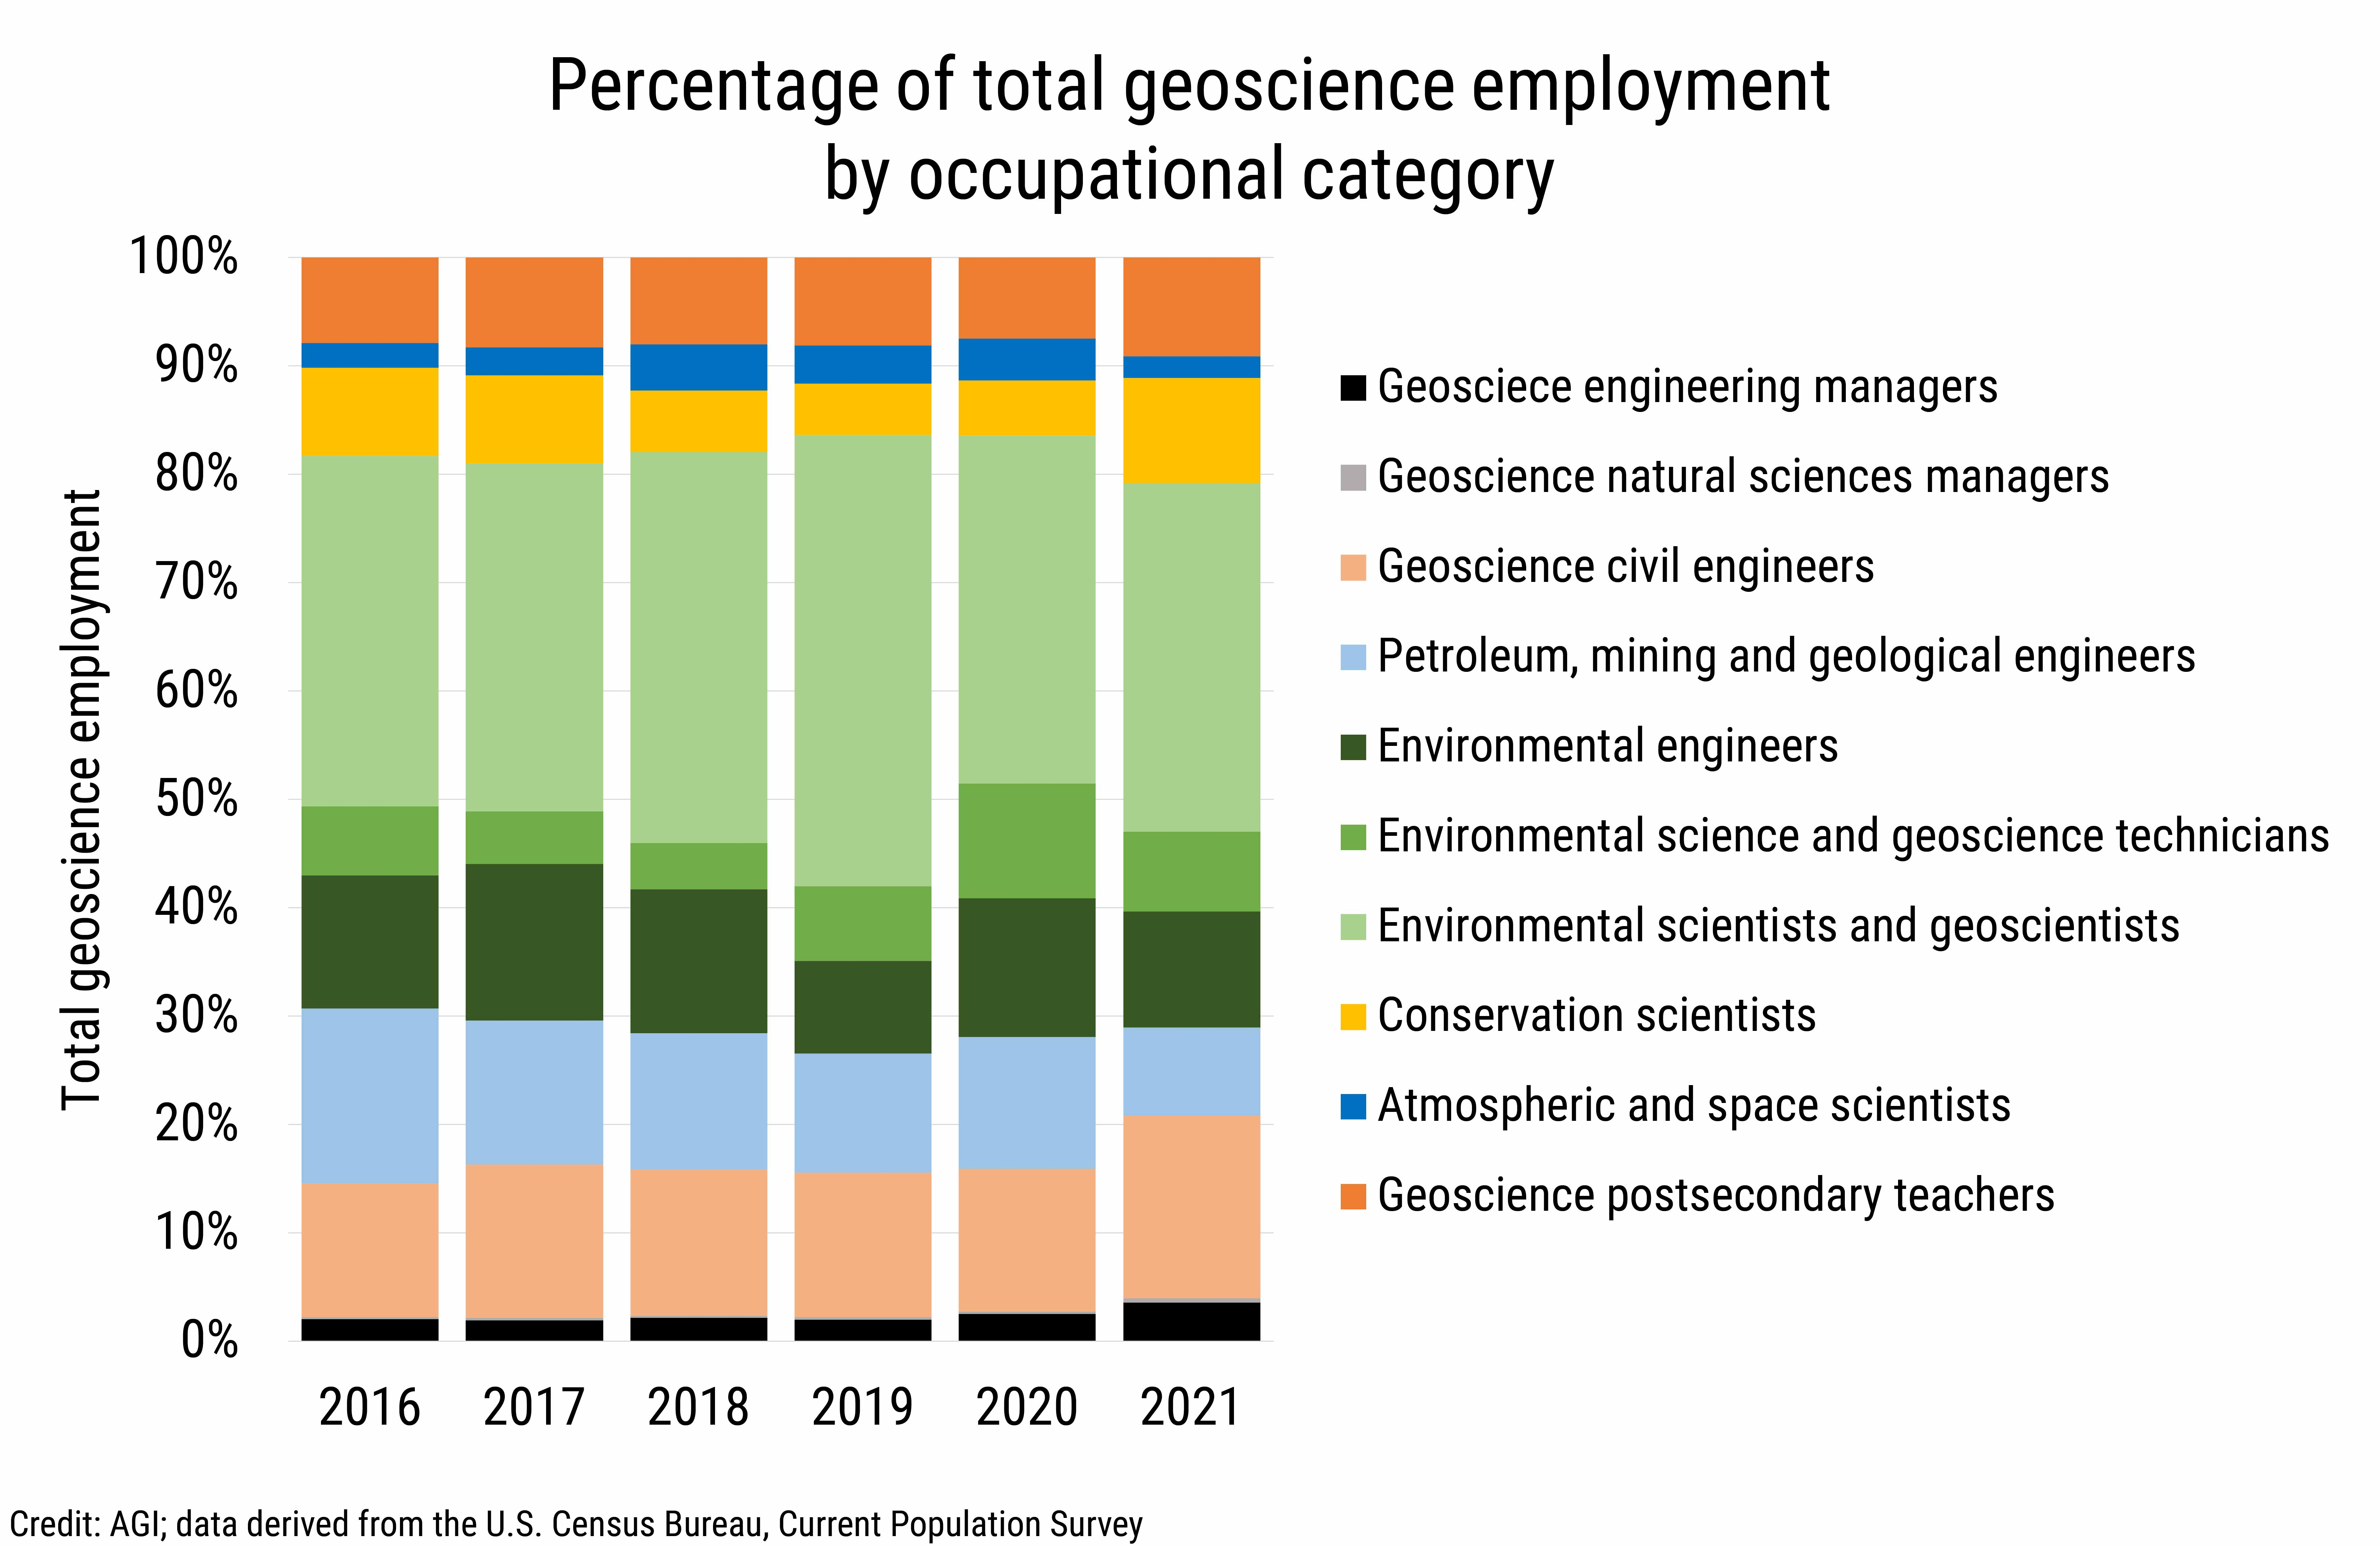 DB_2021-010 chart 02: Percentage of total geoscience employment by occupational category (Credit: AGI, data derived from the U.S. Census Bureau, Current Population Survey)